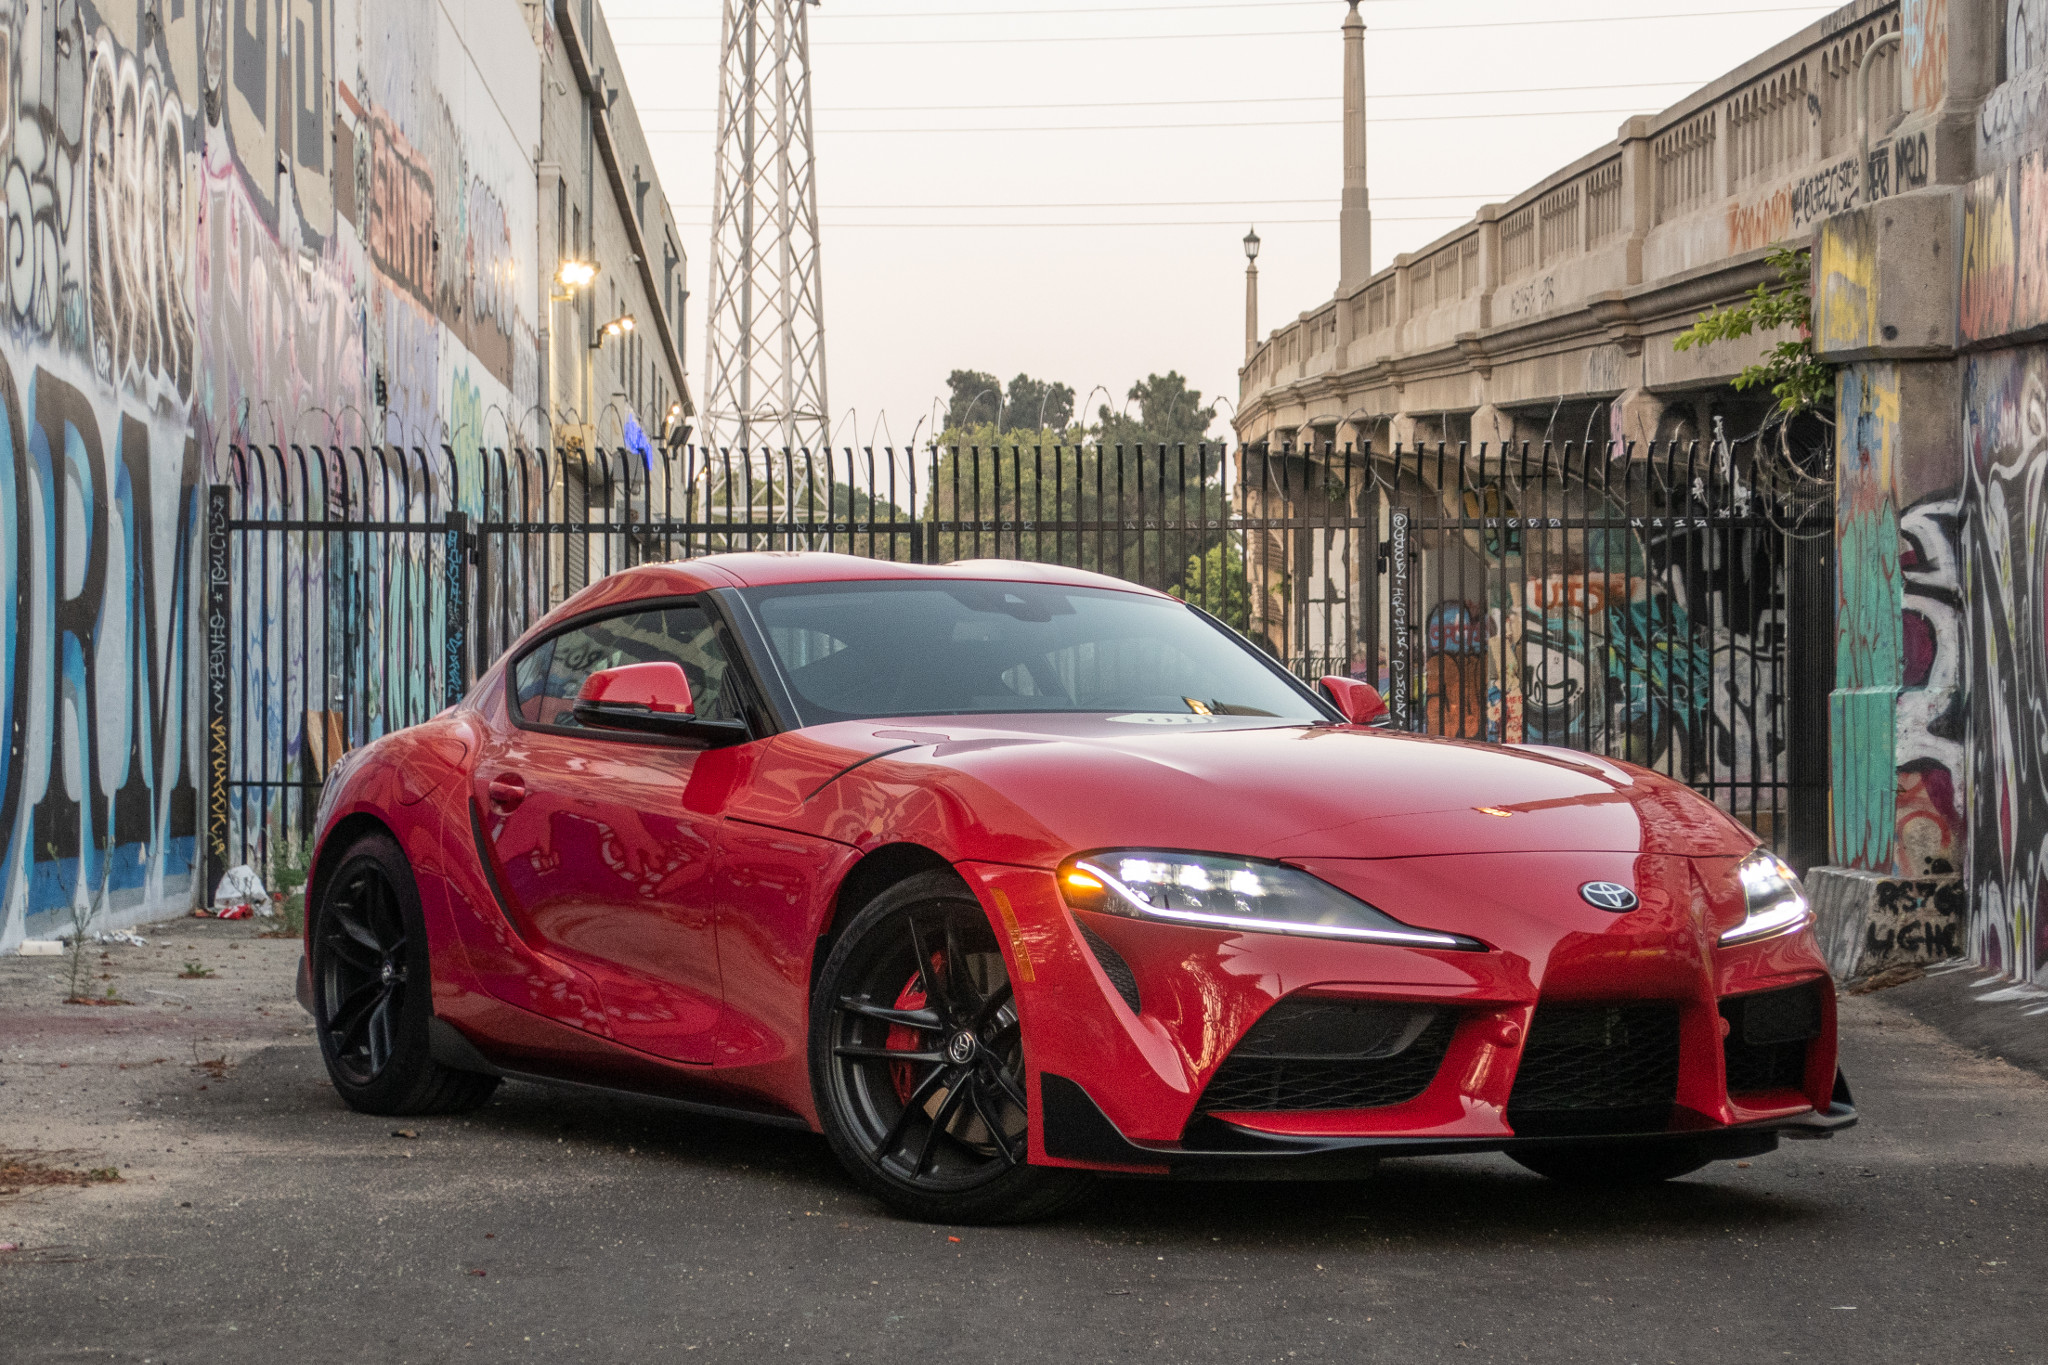 2020 Toyota Supra: 5 Things We Like (and 2 Not So Much)